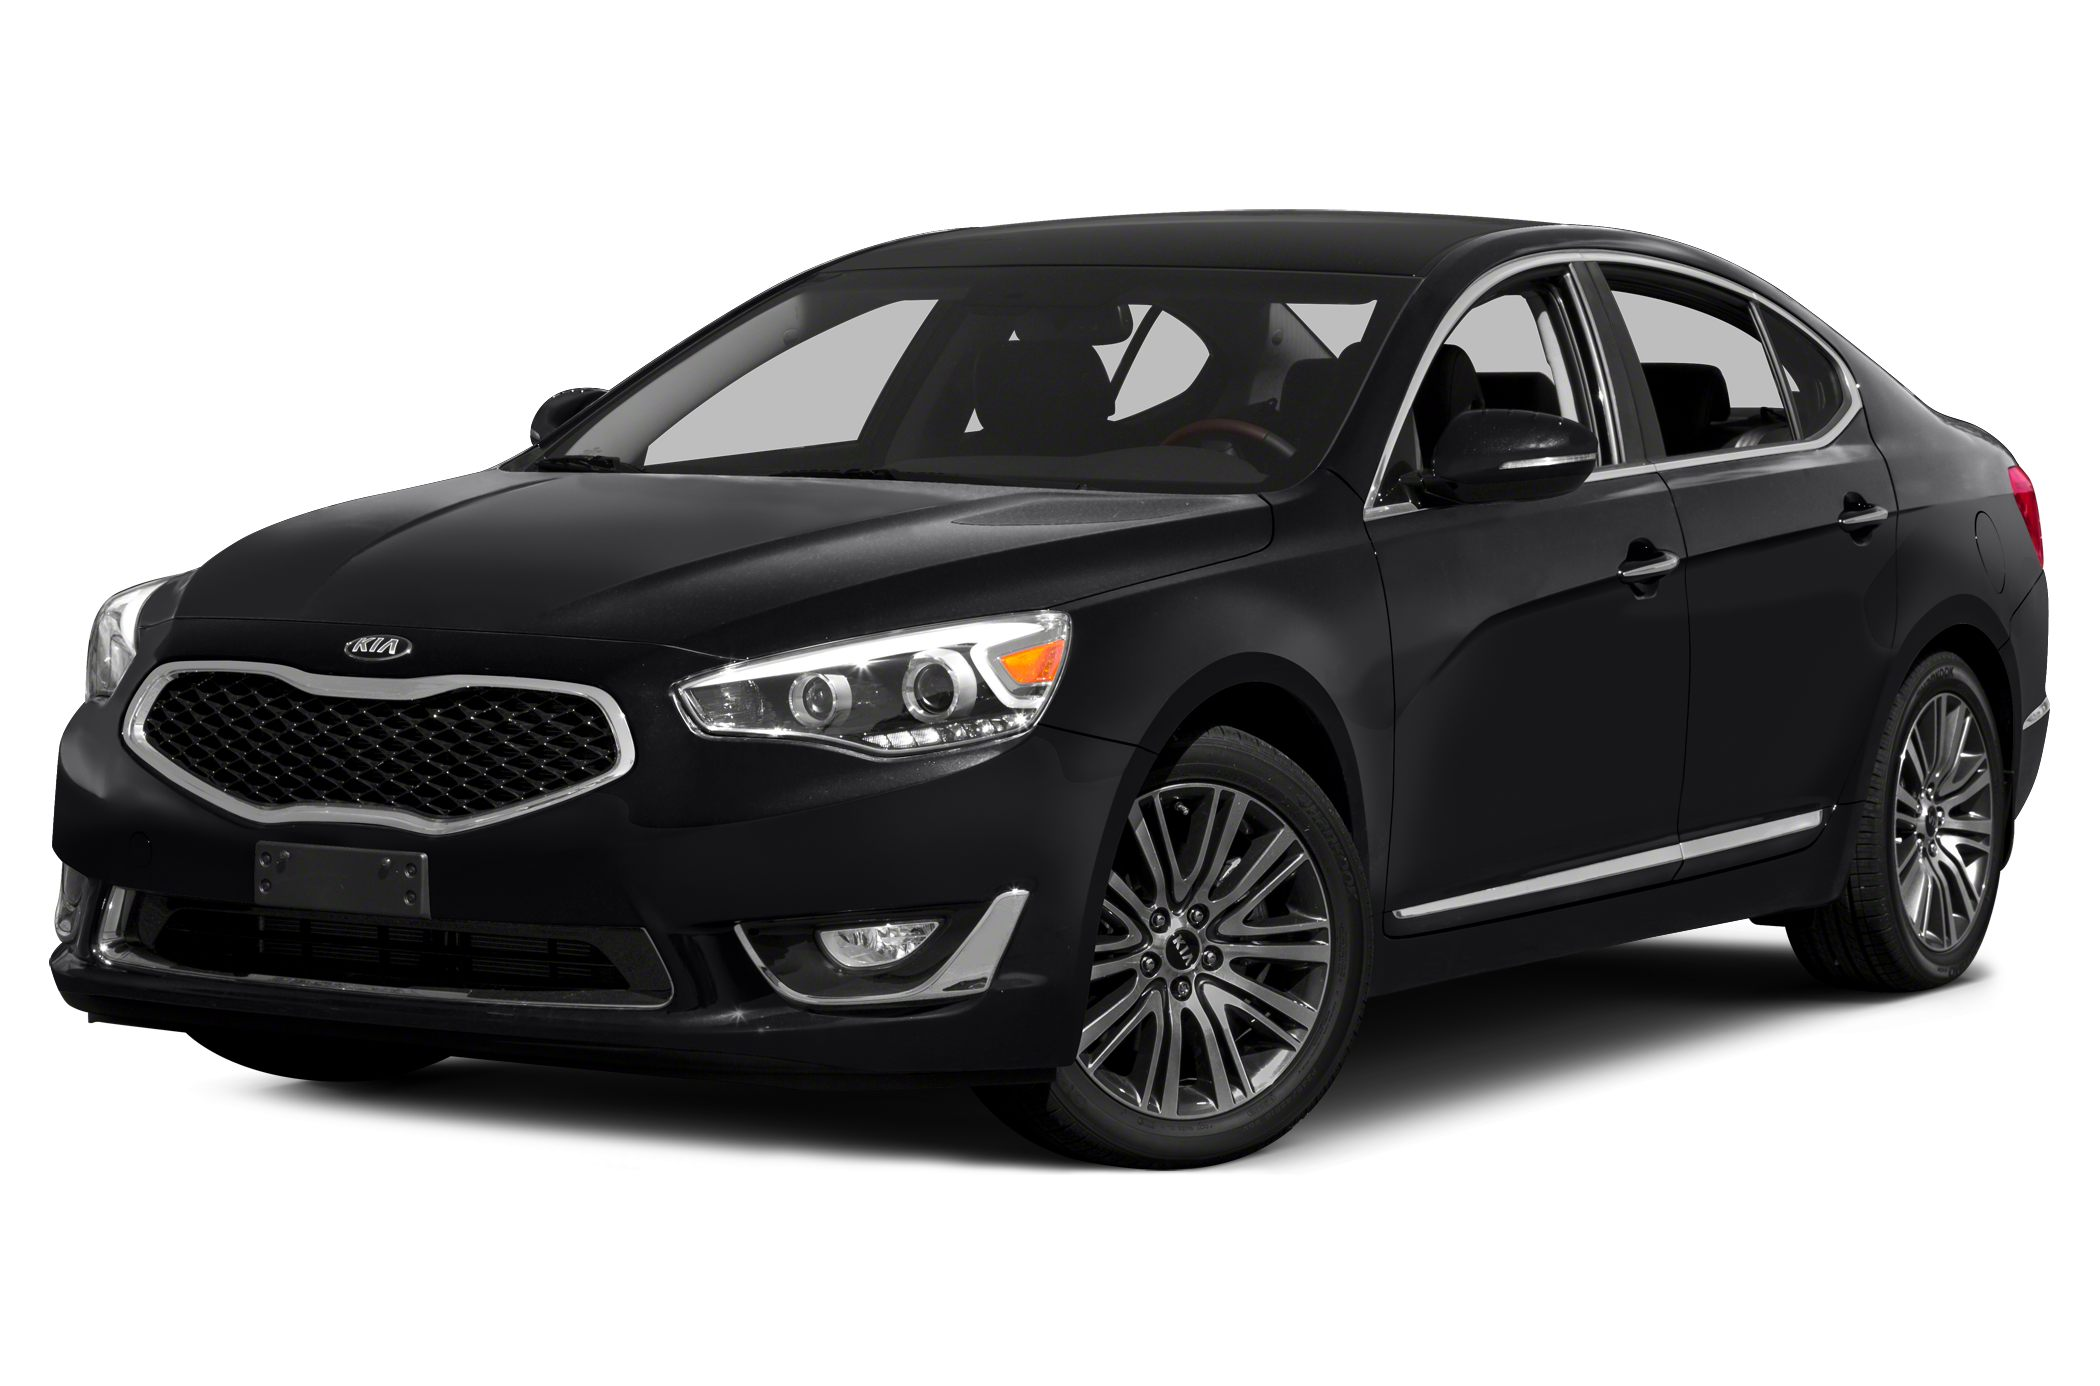 CAC40KIC151A021001 Cool Review About 2017 Kia Cadenza Release Date